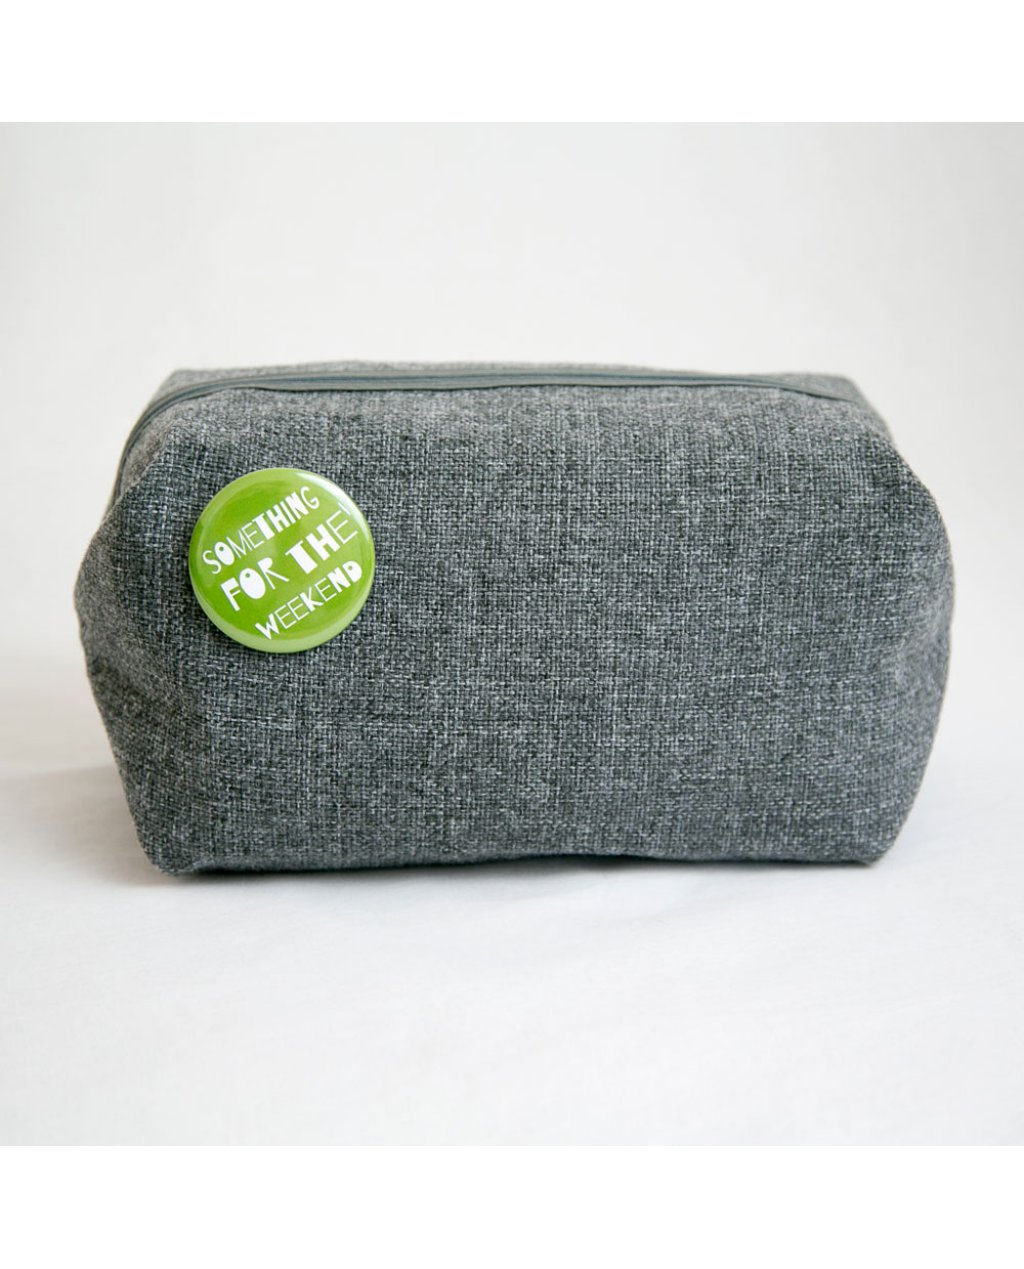 Grey Washbag 'Something for the weekend'